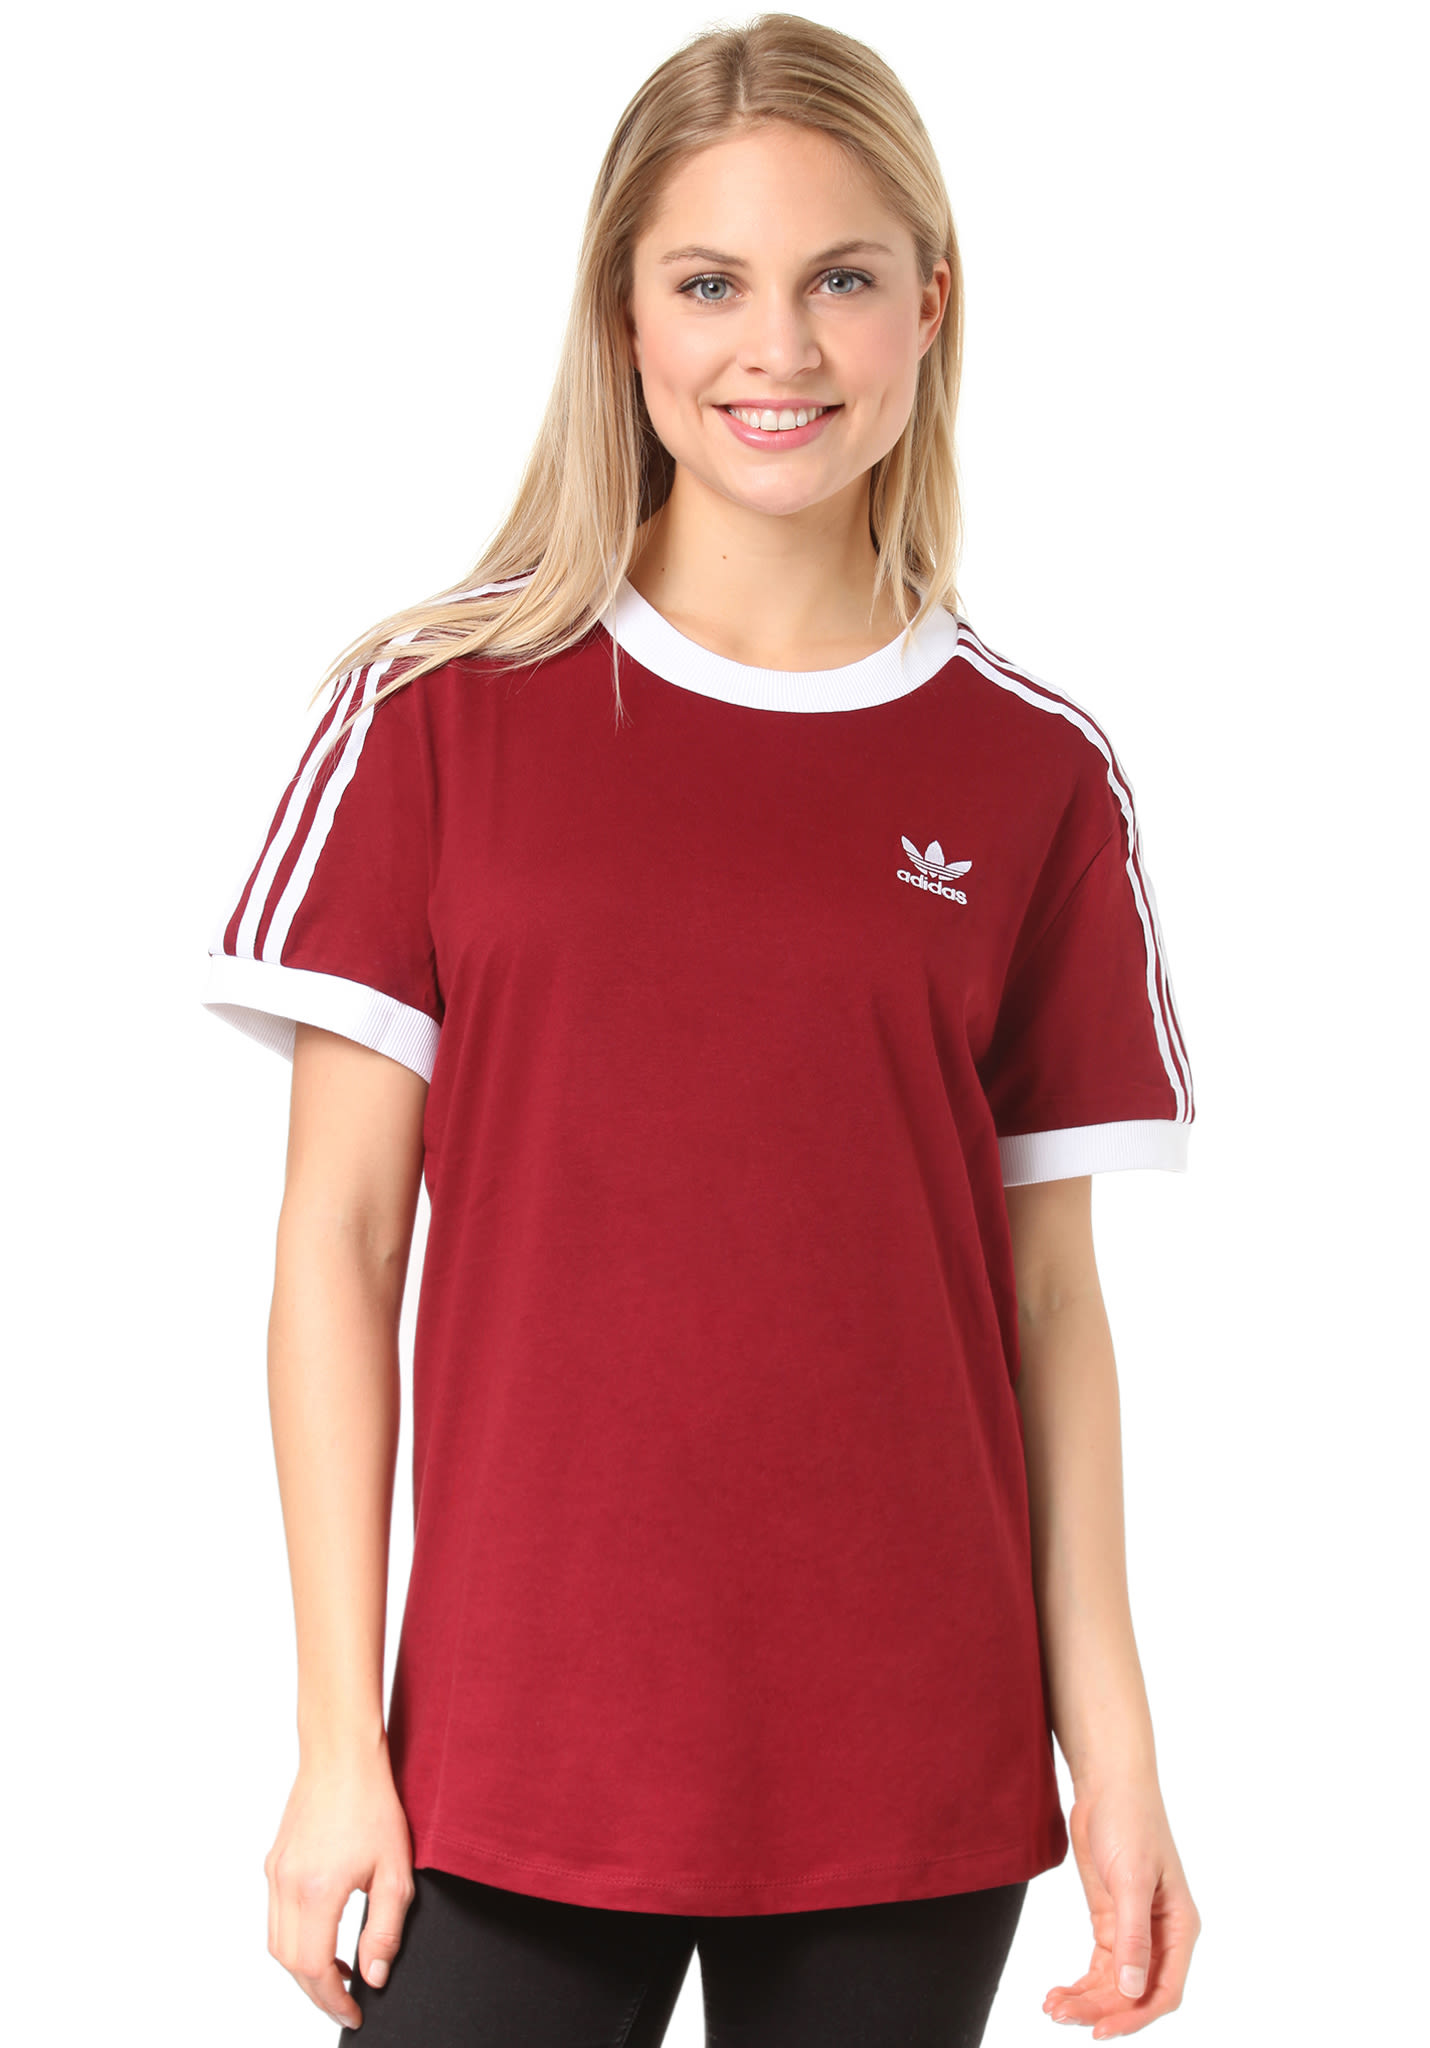 1f2869945672ff adidas Originals 3 Stripes - T-Shirt für Damen - Rot - Planet Sports